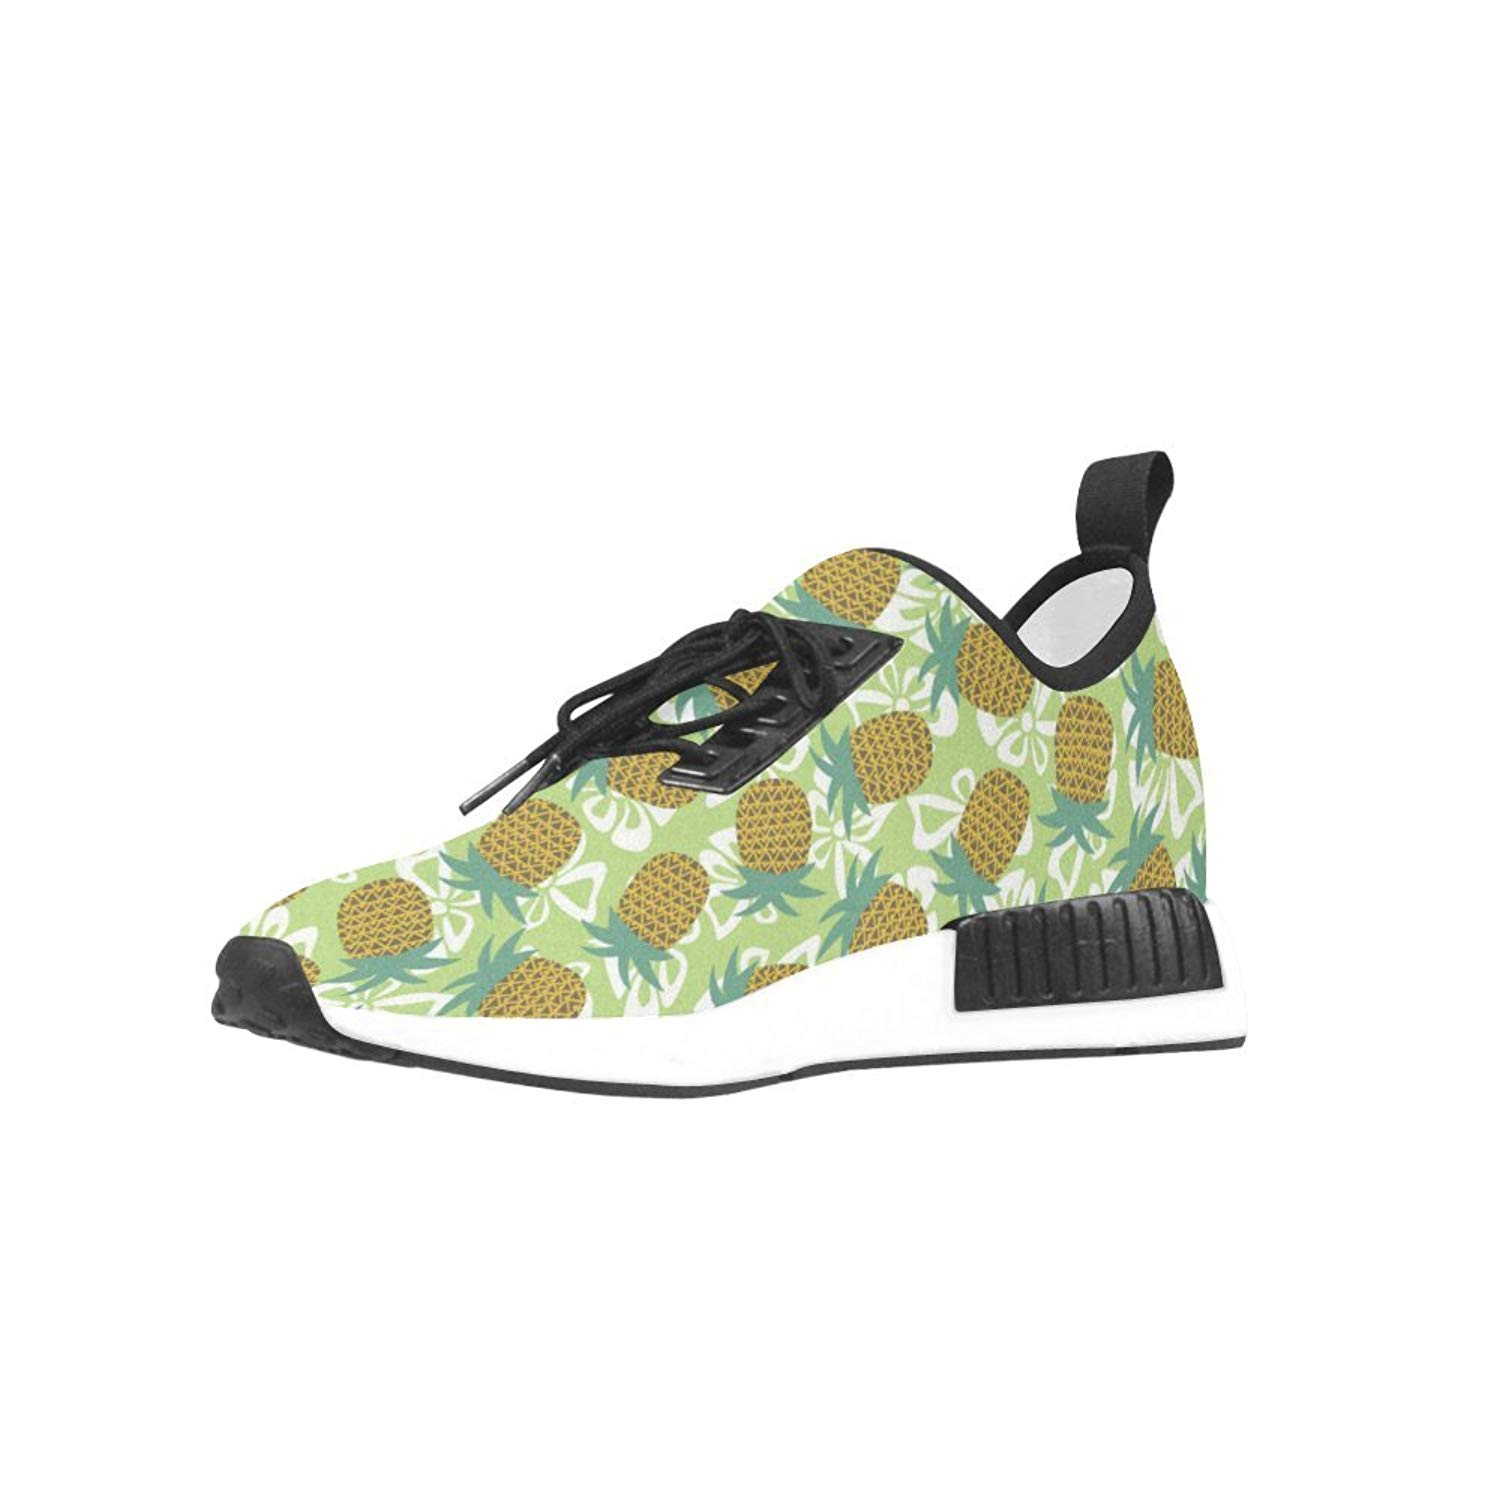 Pineapple Bow Breathable Woven Leather Insole Mesh Cloth Draco Running & Walking Shoes For Women